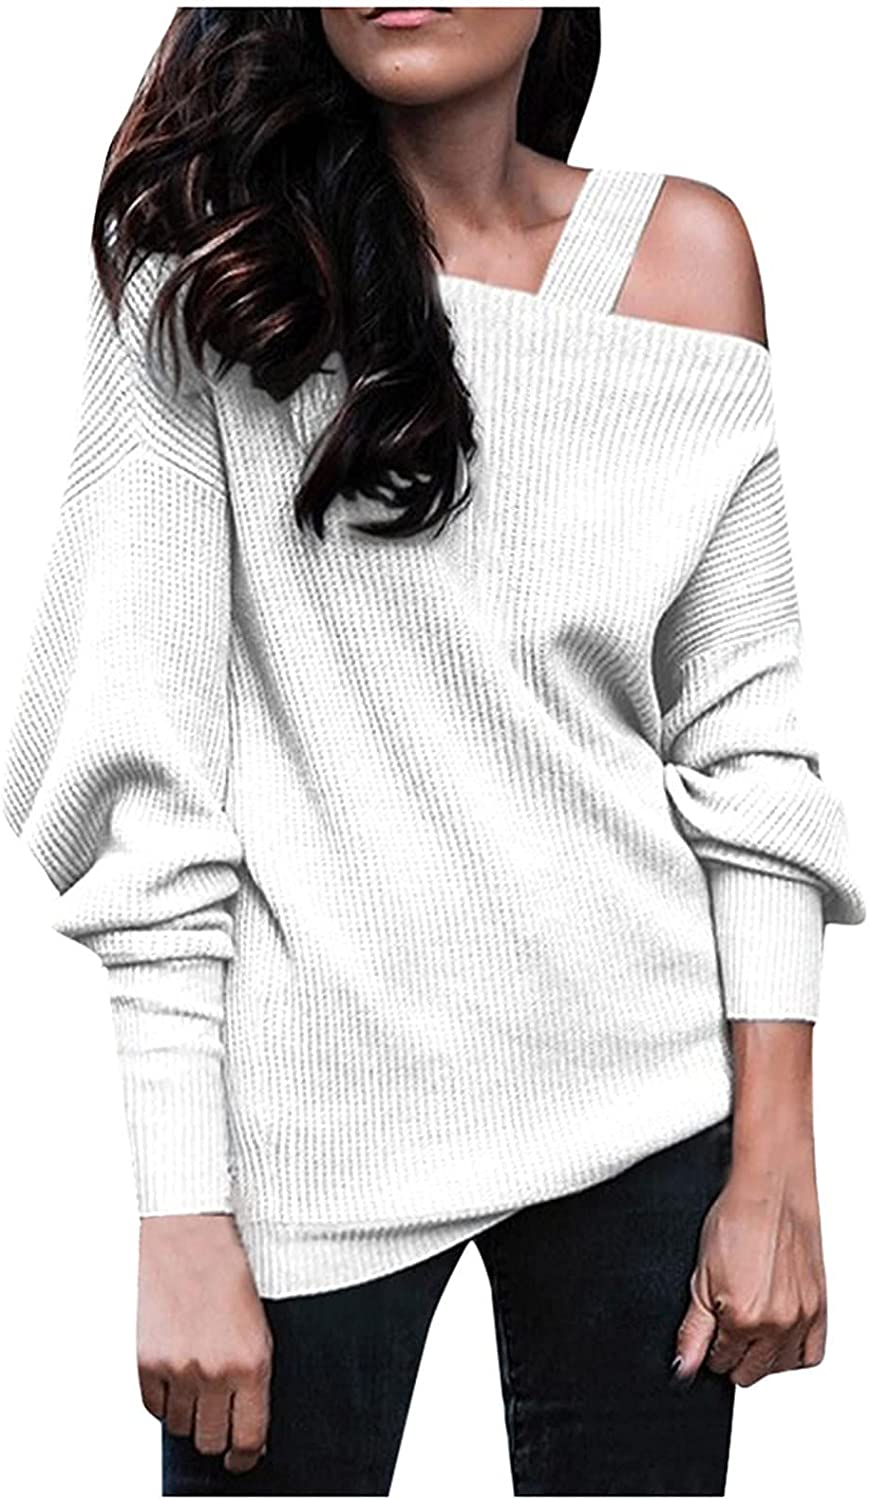 quality assurance Chicago Mall Laibory Women Strap Cold Shoulder Slee Fashion Long Tops Batwing